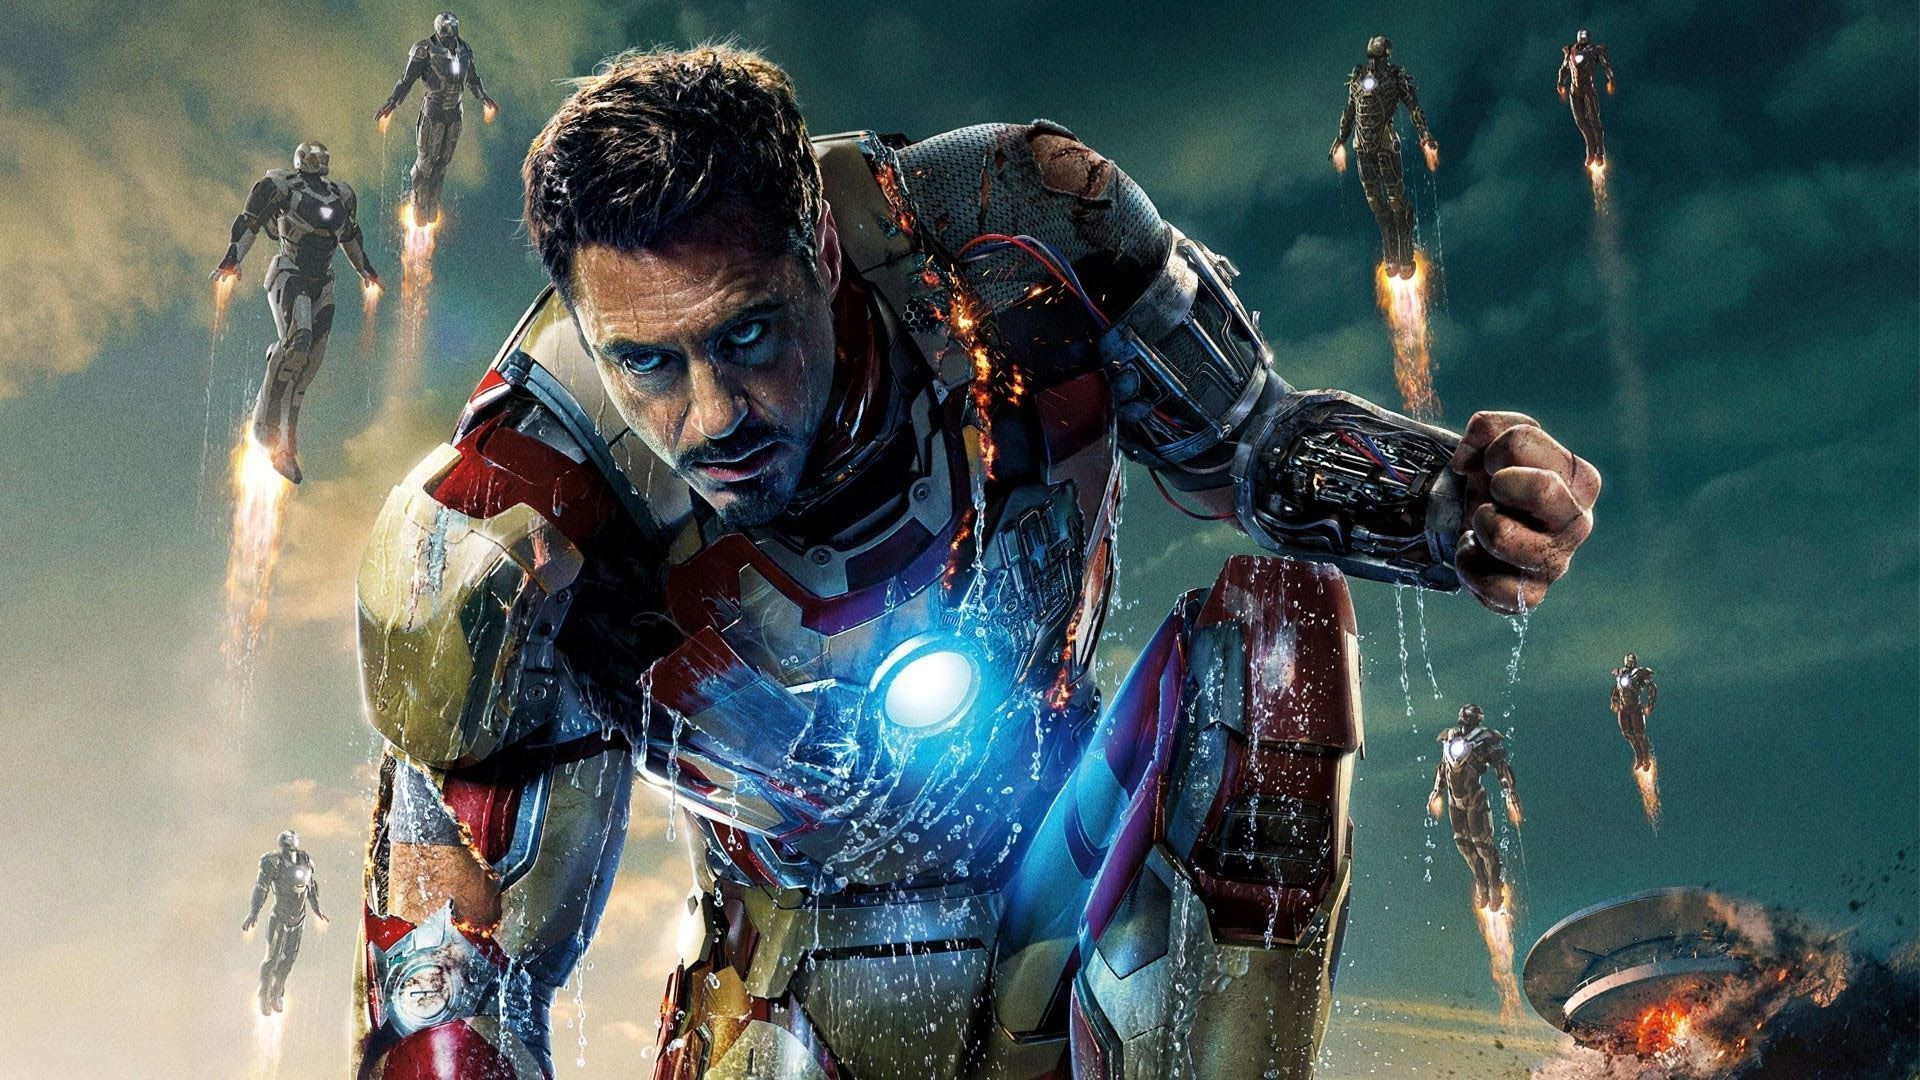 iron man tony stark without mask 2015 is a hd wallpaper posted in